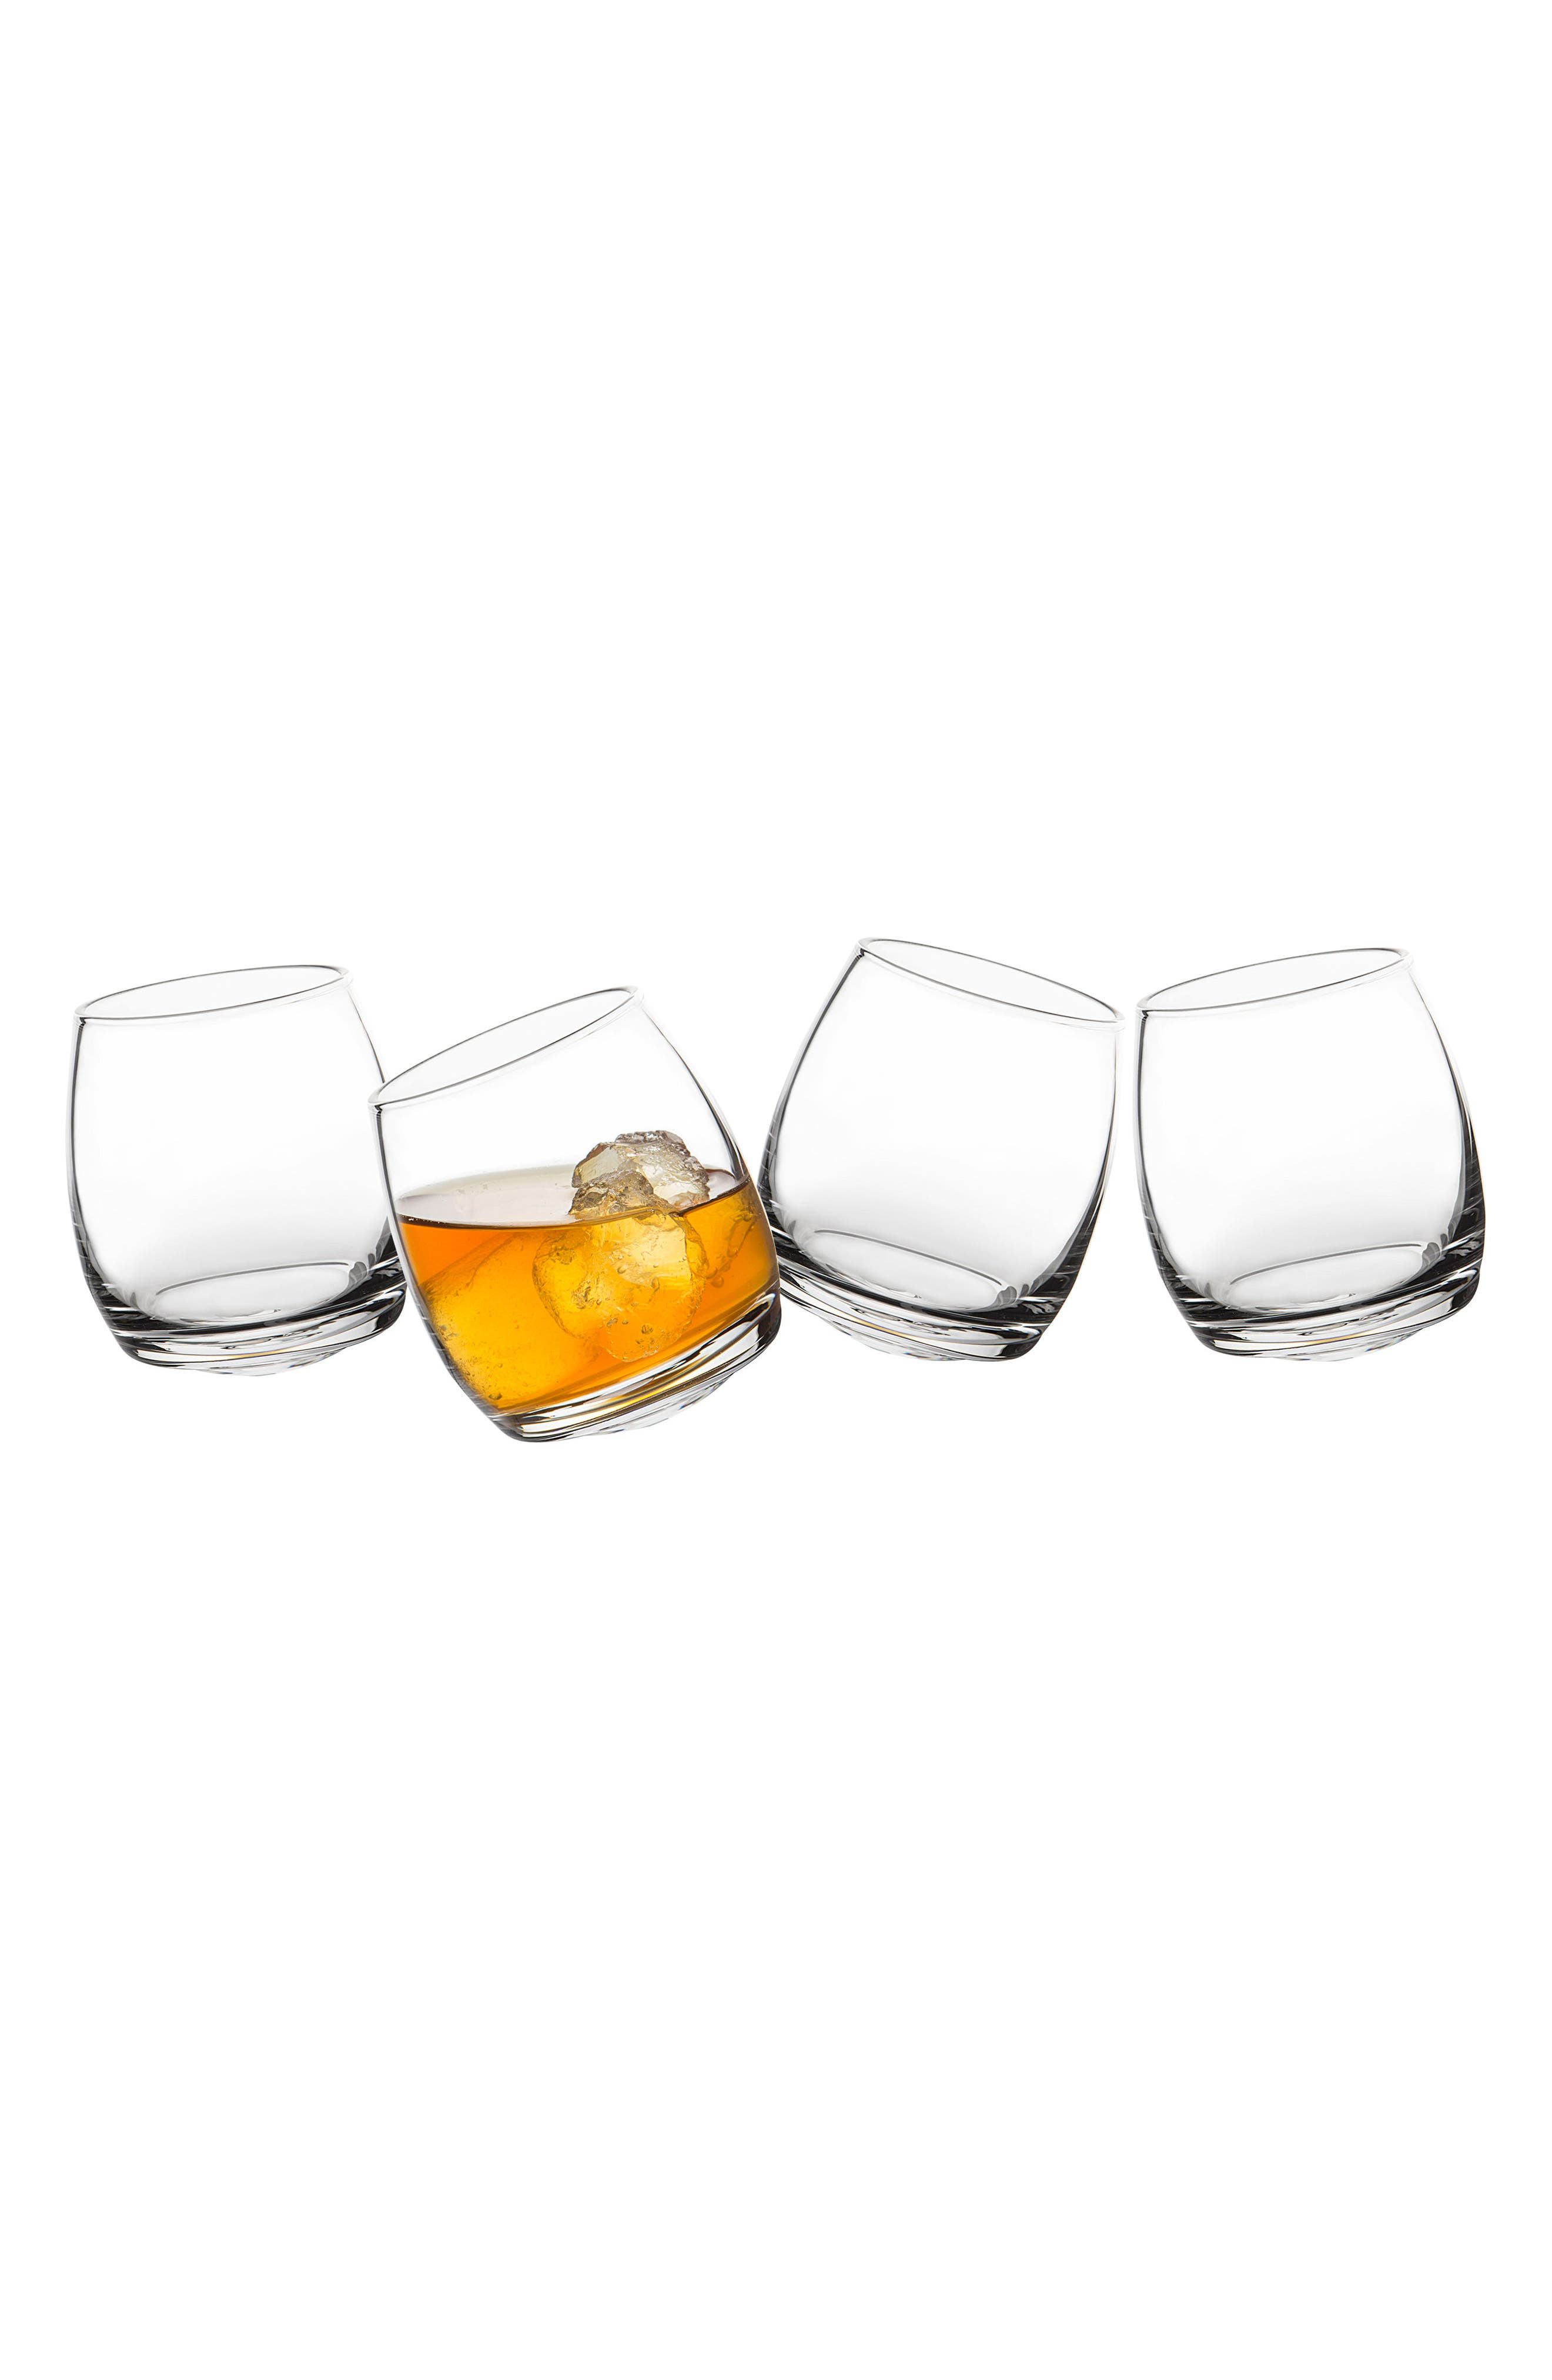 Monogram Tipsy Set of 4 Double Old Fashioned Glasses,                             Main thumbnail 1, color,                             WHITE